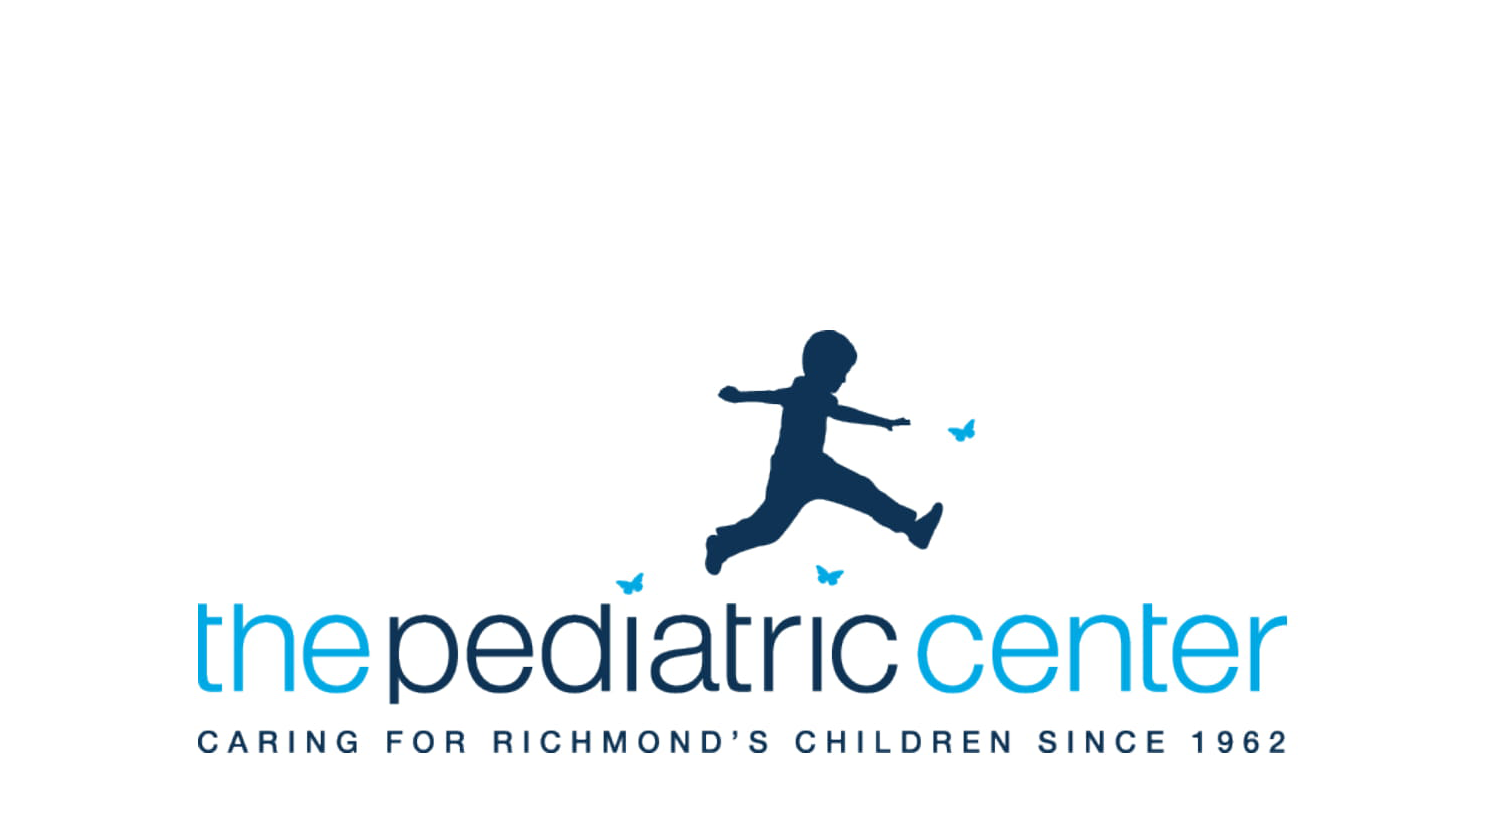 The Pediatrcic Center